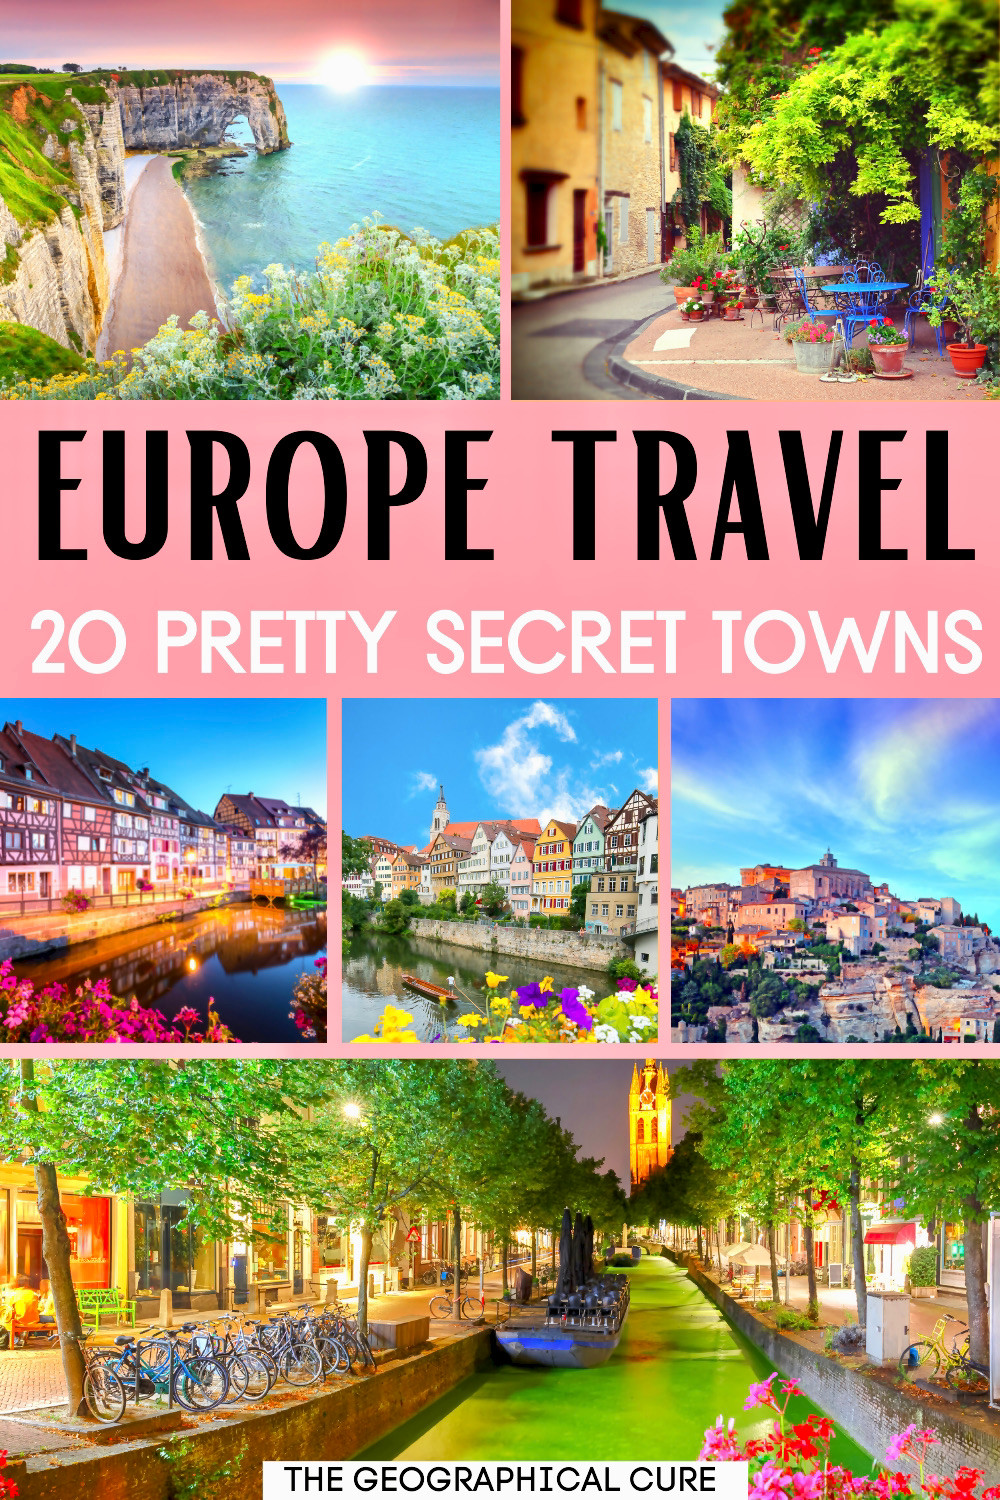 ultimate guide to the most beautiful hidden gem towns in Europe